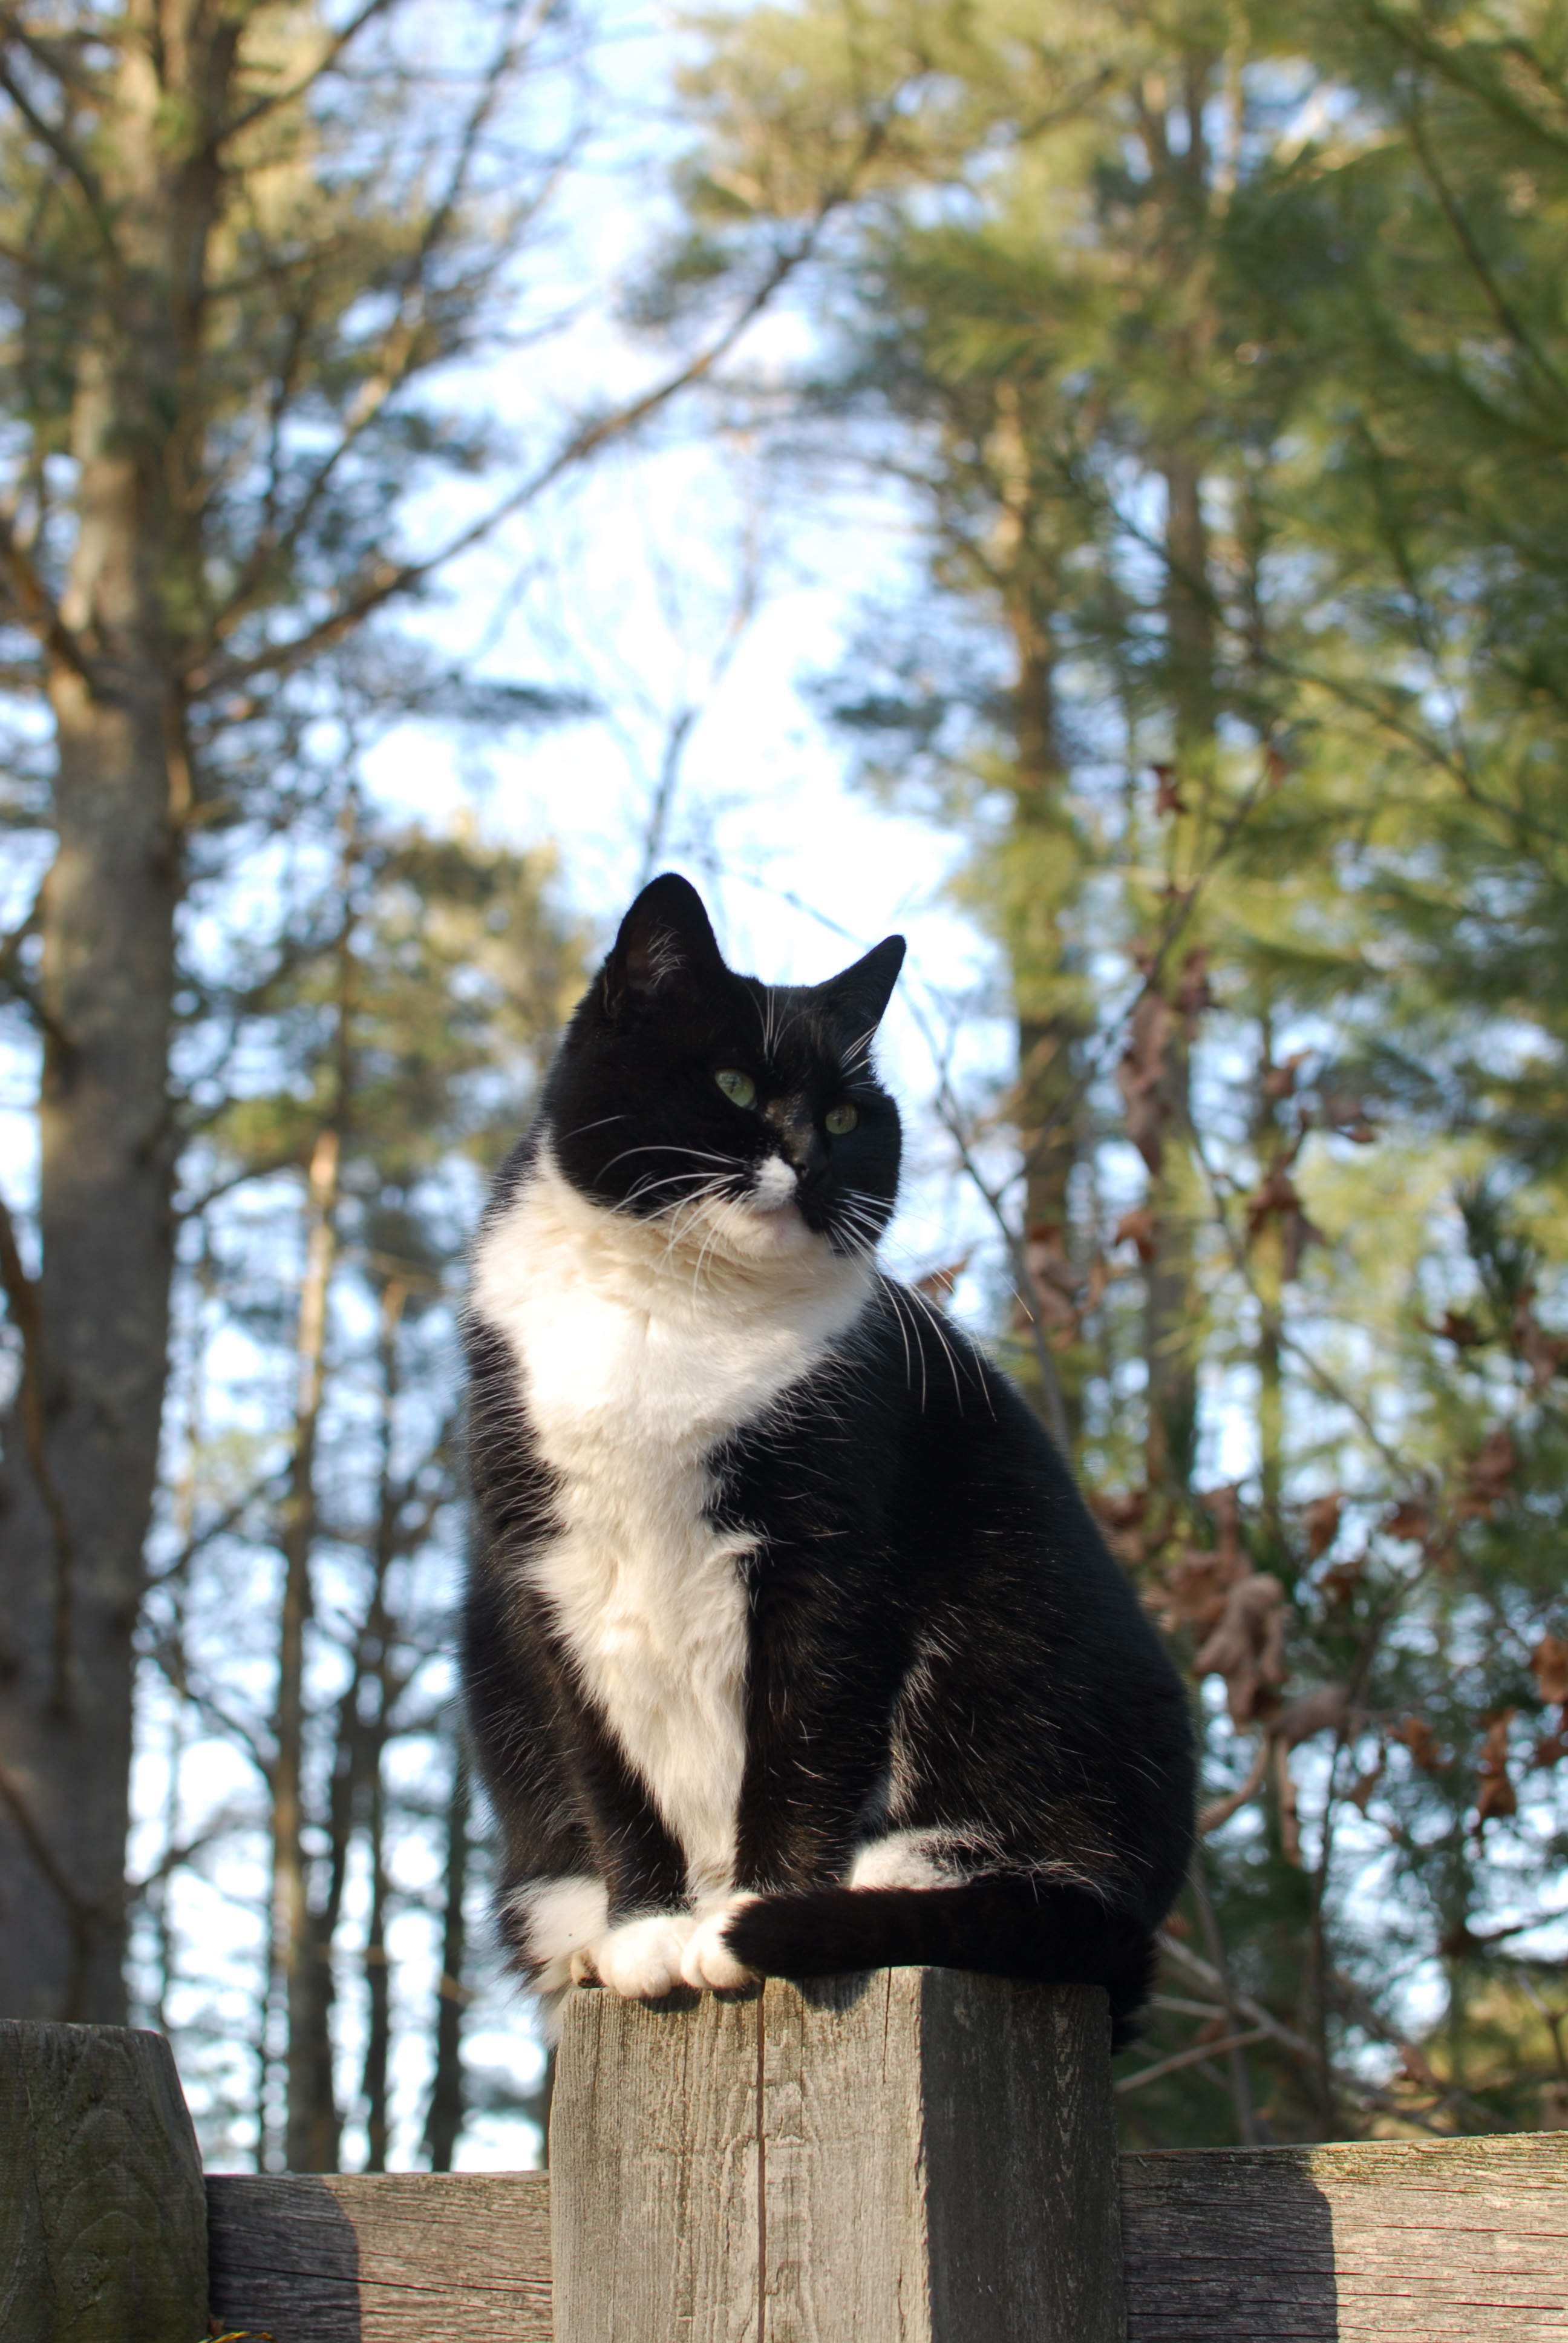 Delilah-the-winslow-cat-perched-on-a-post